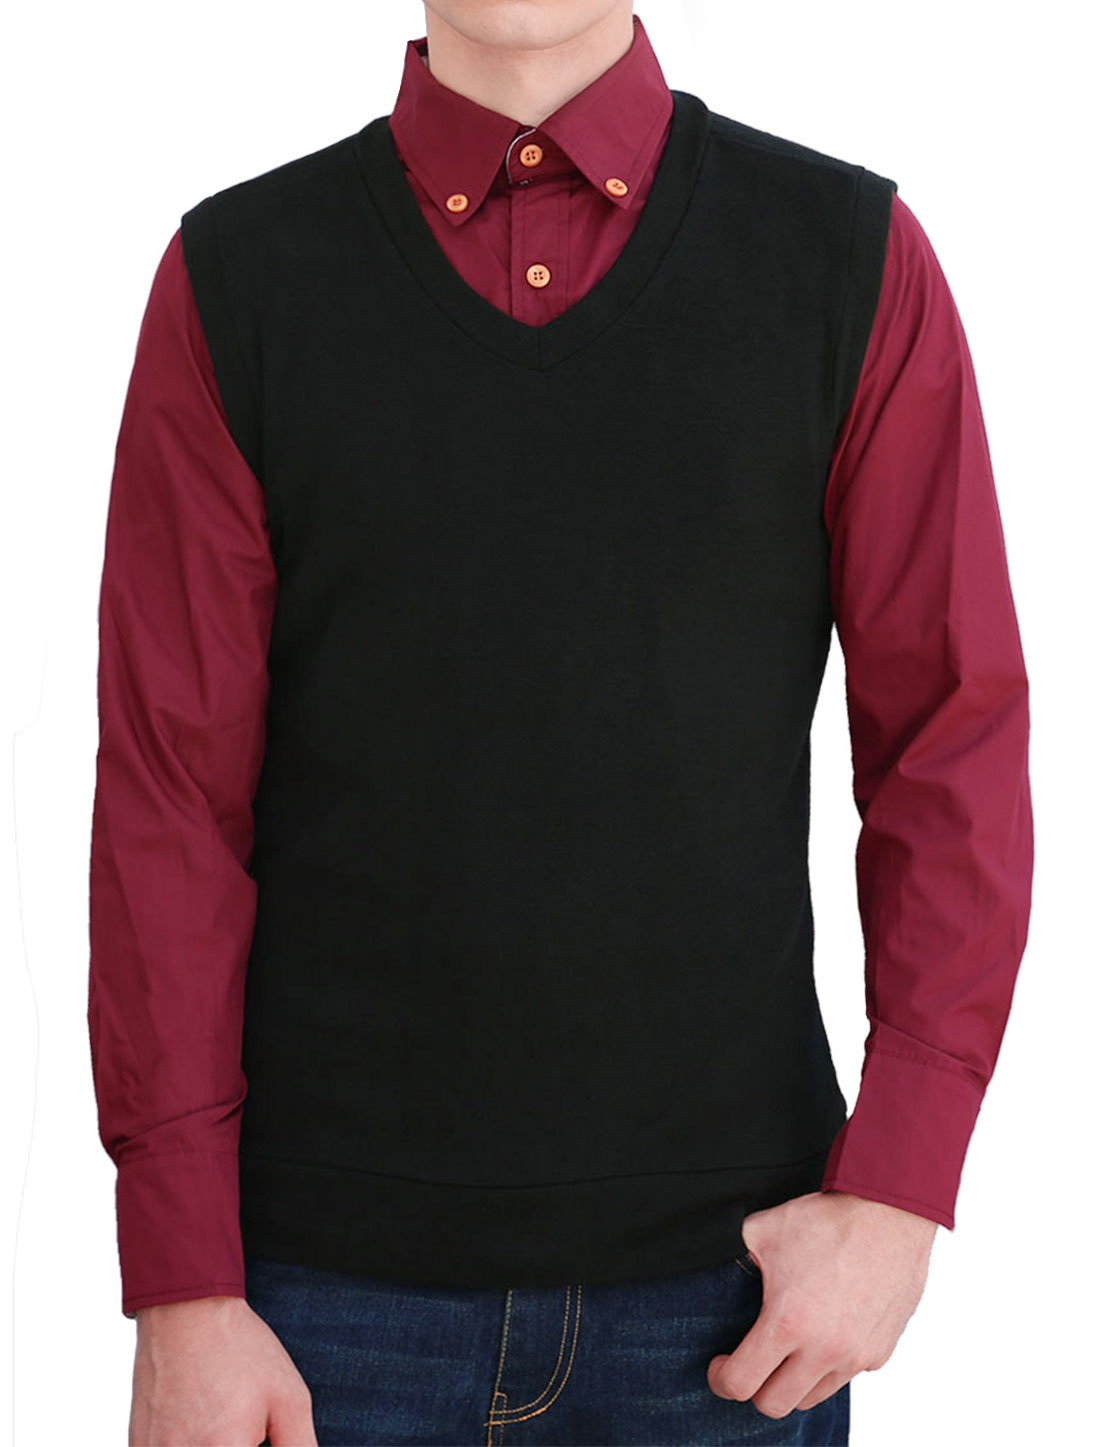 New Style Stretchy Soft V Neck Knit Vests for Men Black M